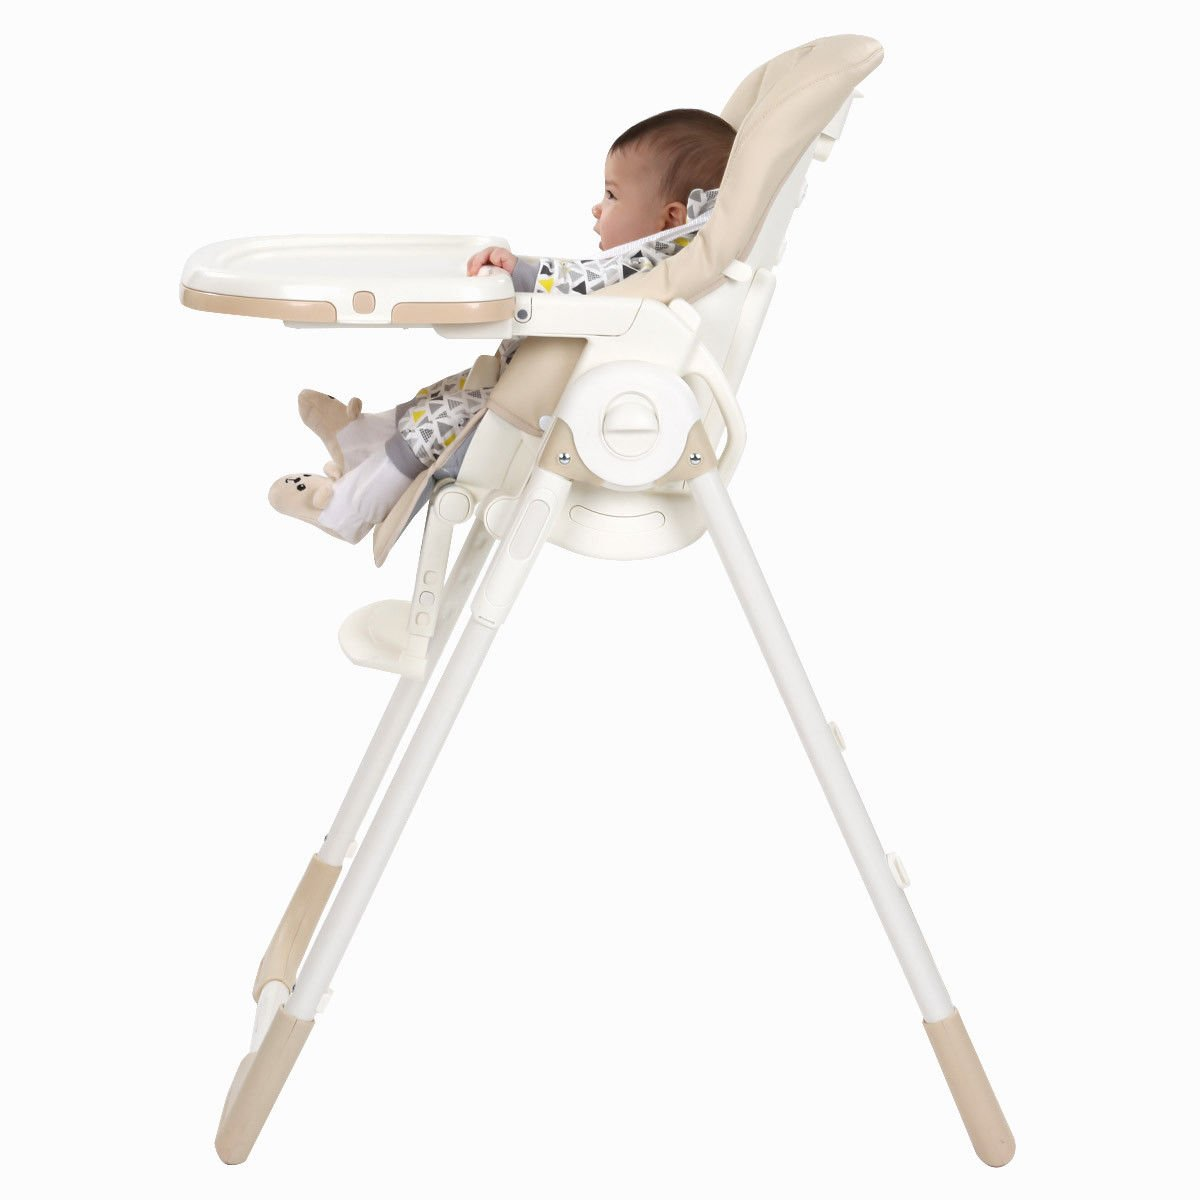 MD Group Baby High Chair Folding Adjustable Height Recline Feeding Steel & Beige Plastic